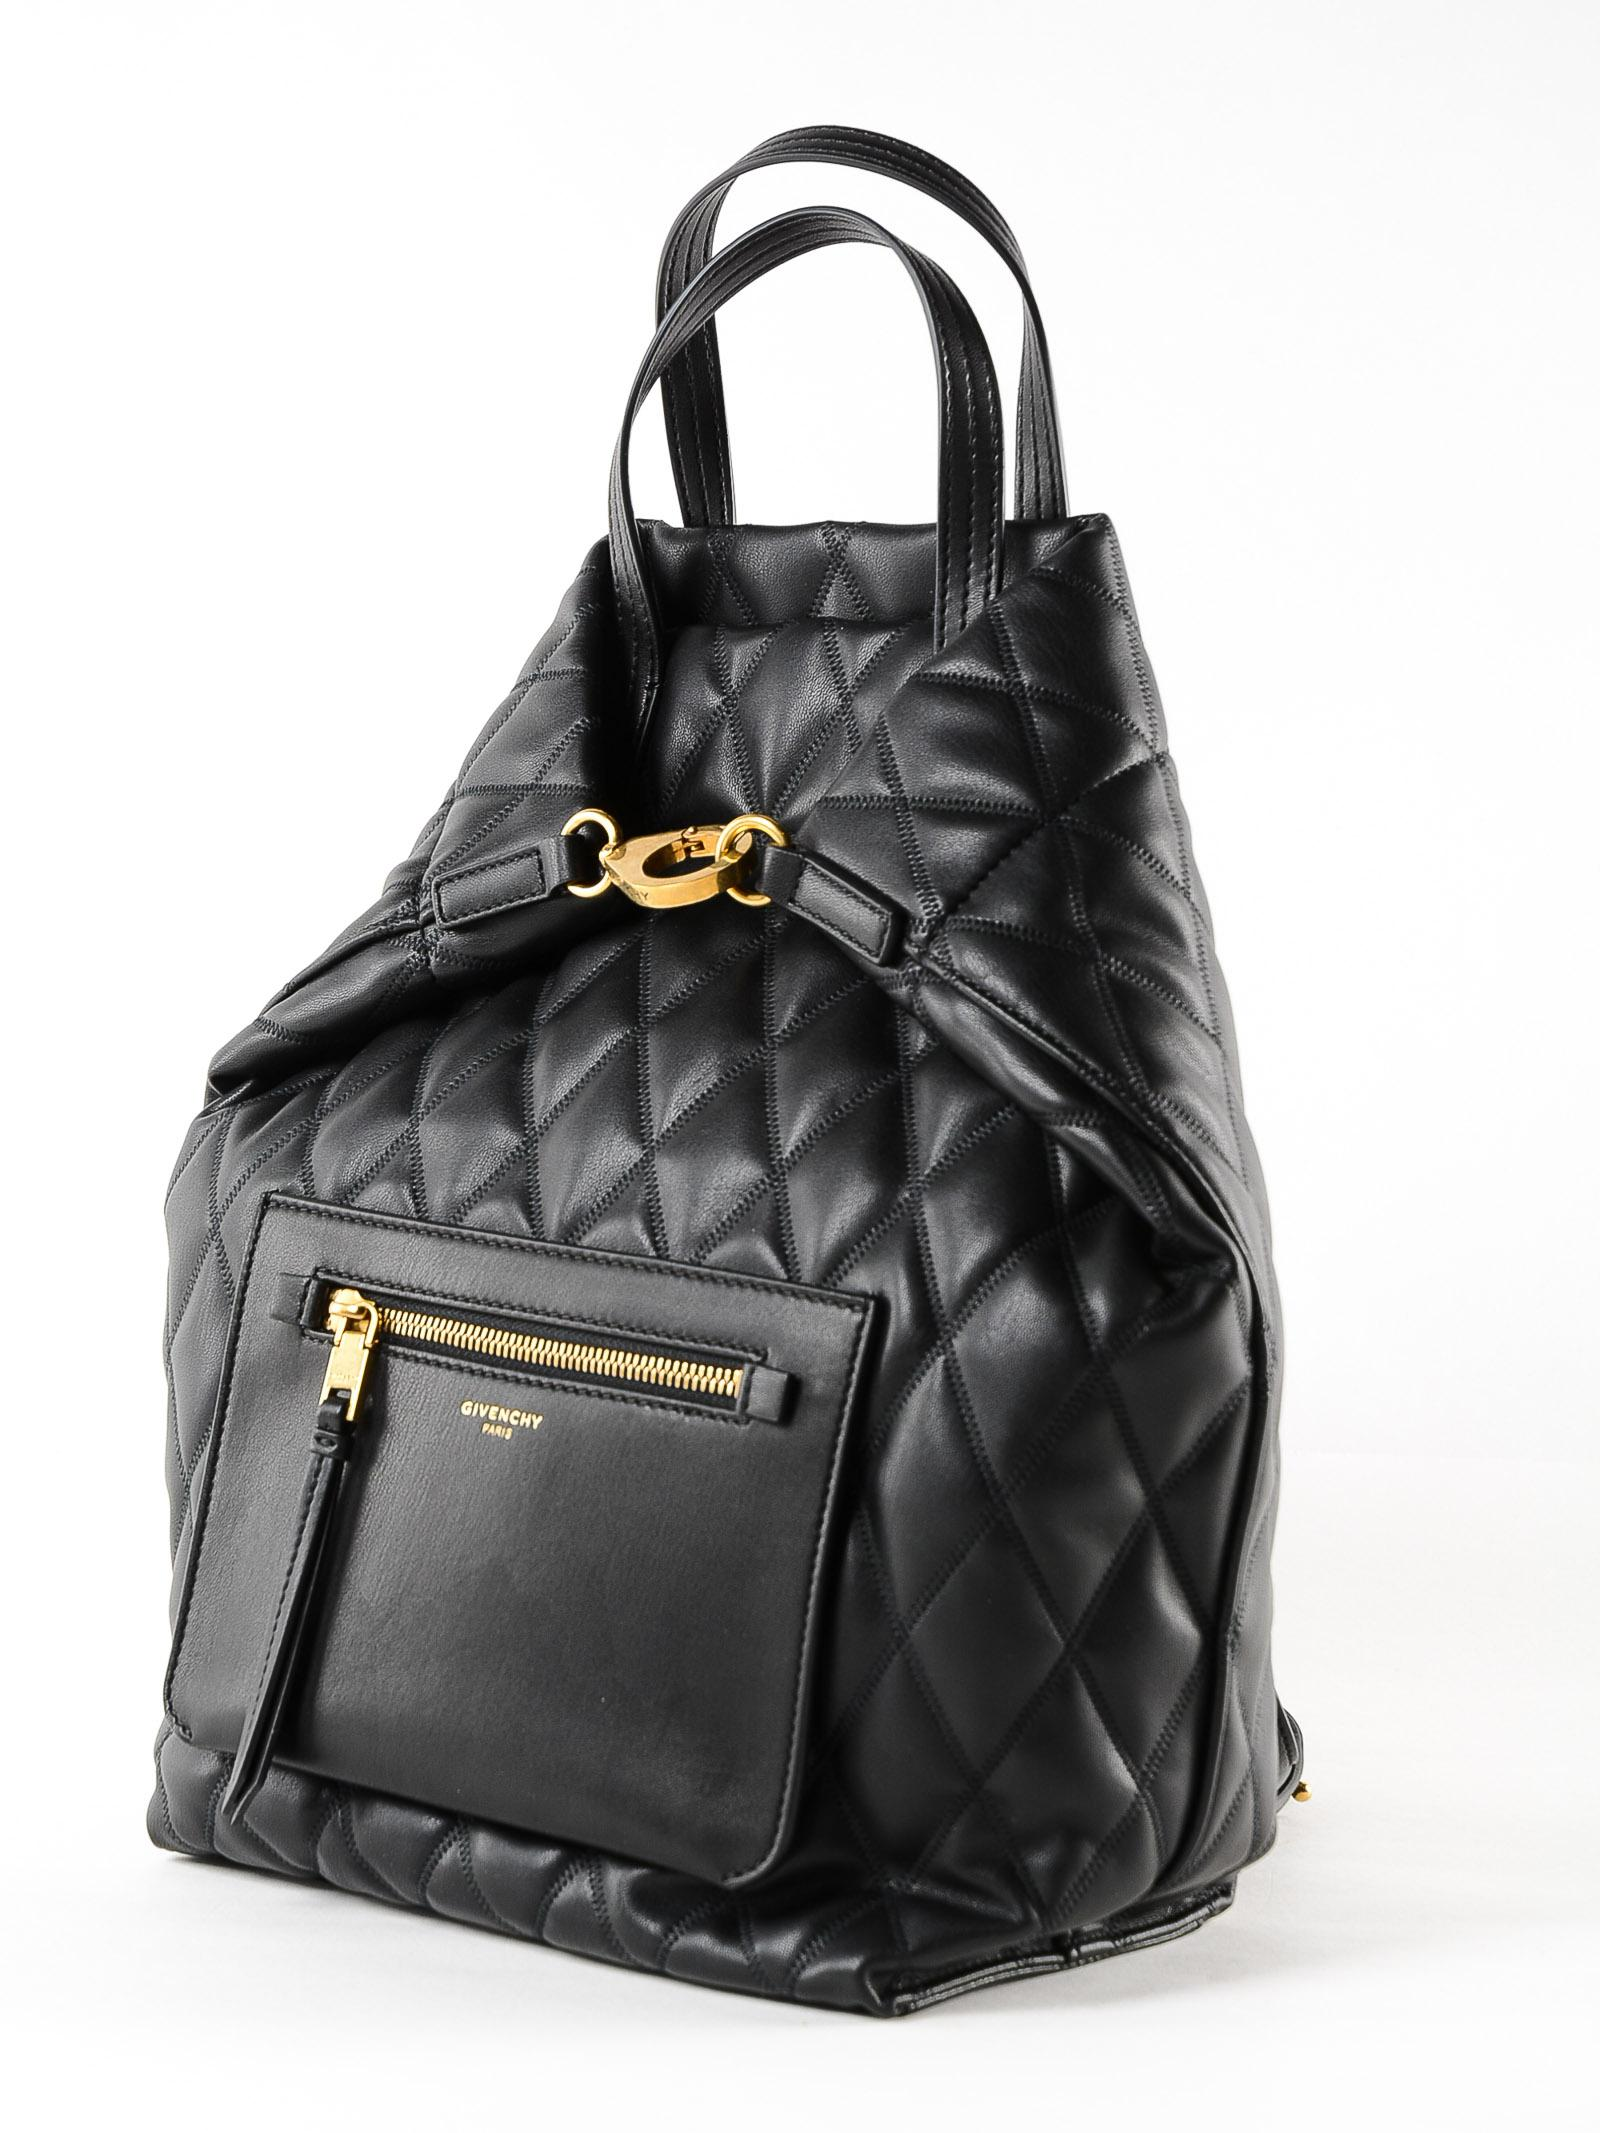 e6fe3ece9b65 Givenchy Duo Backpack in Black - Save 1% - Lyst